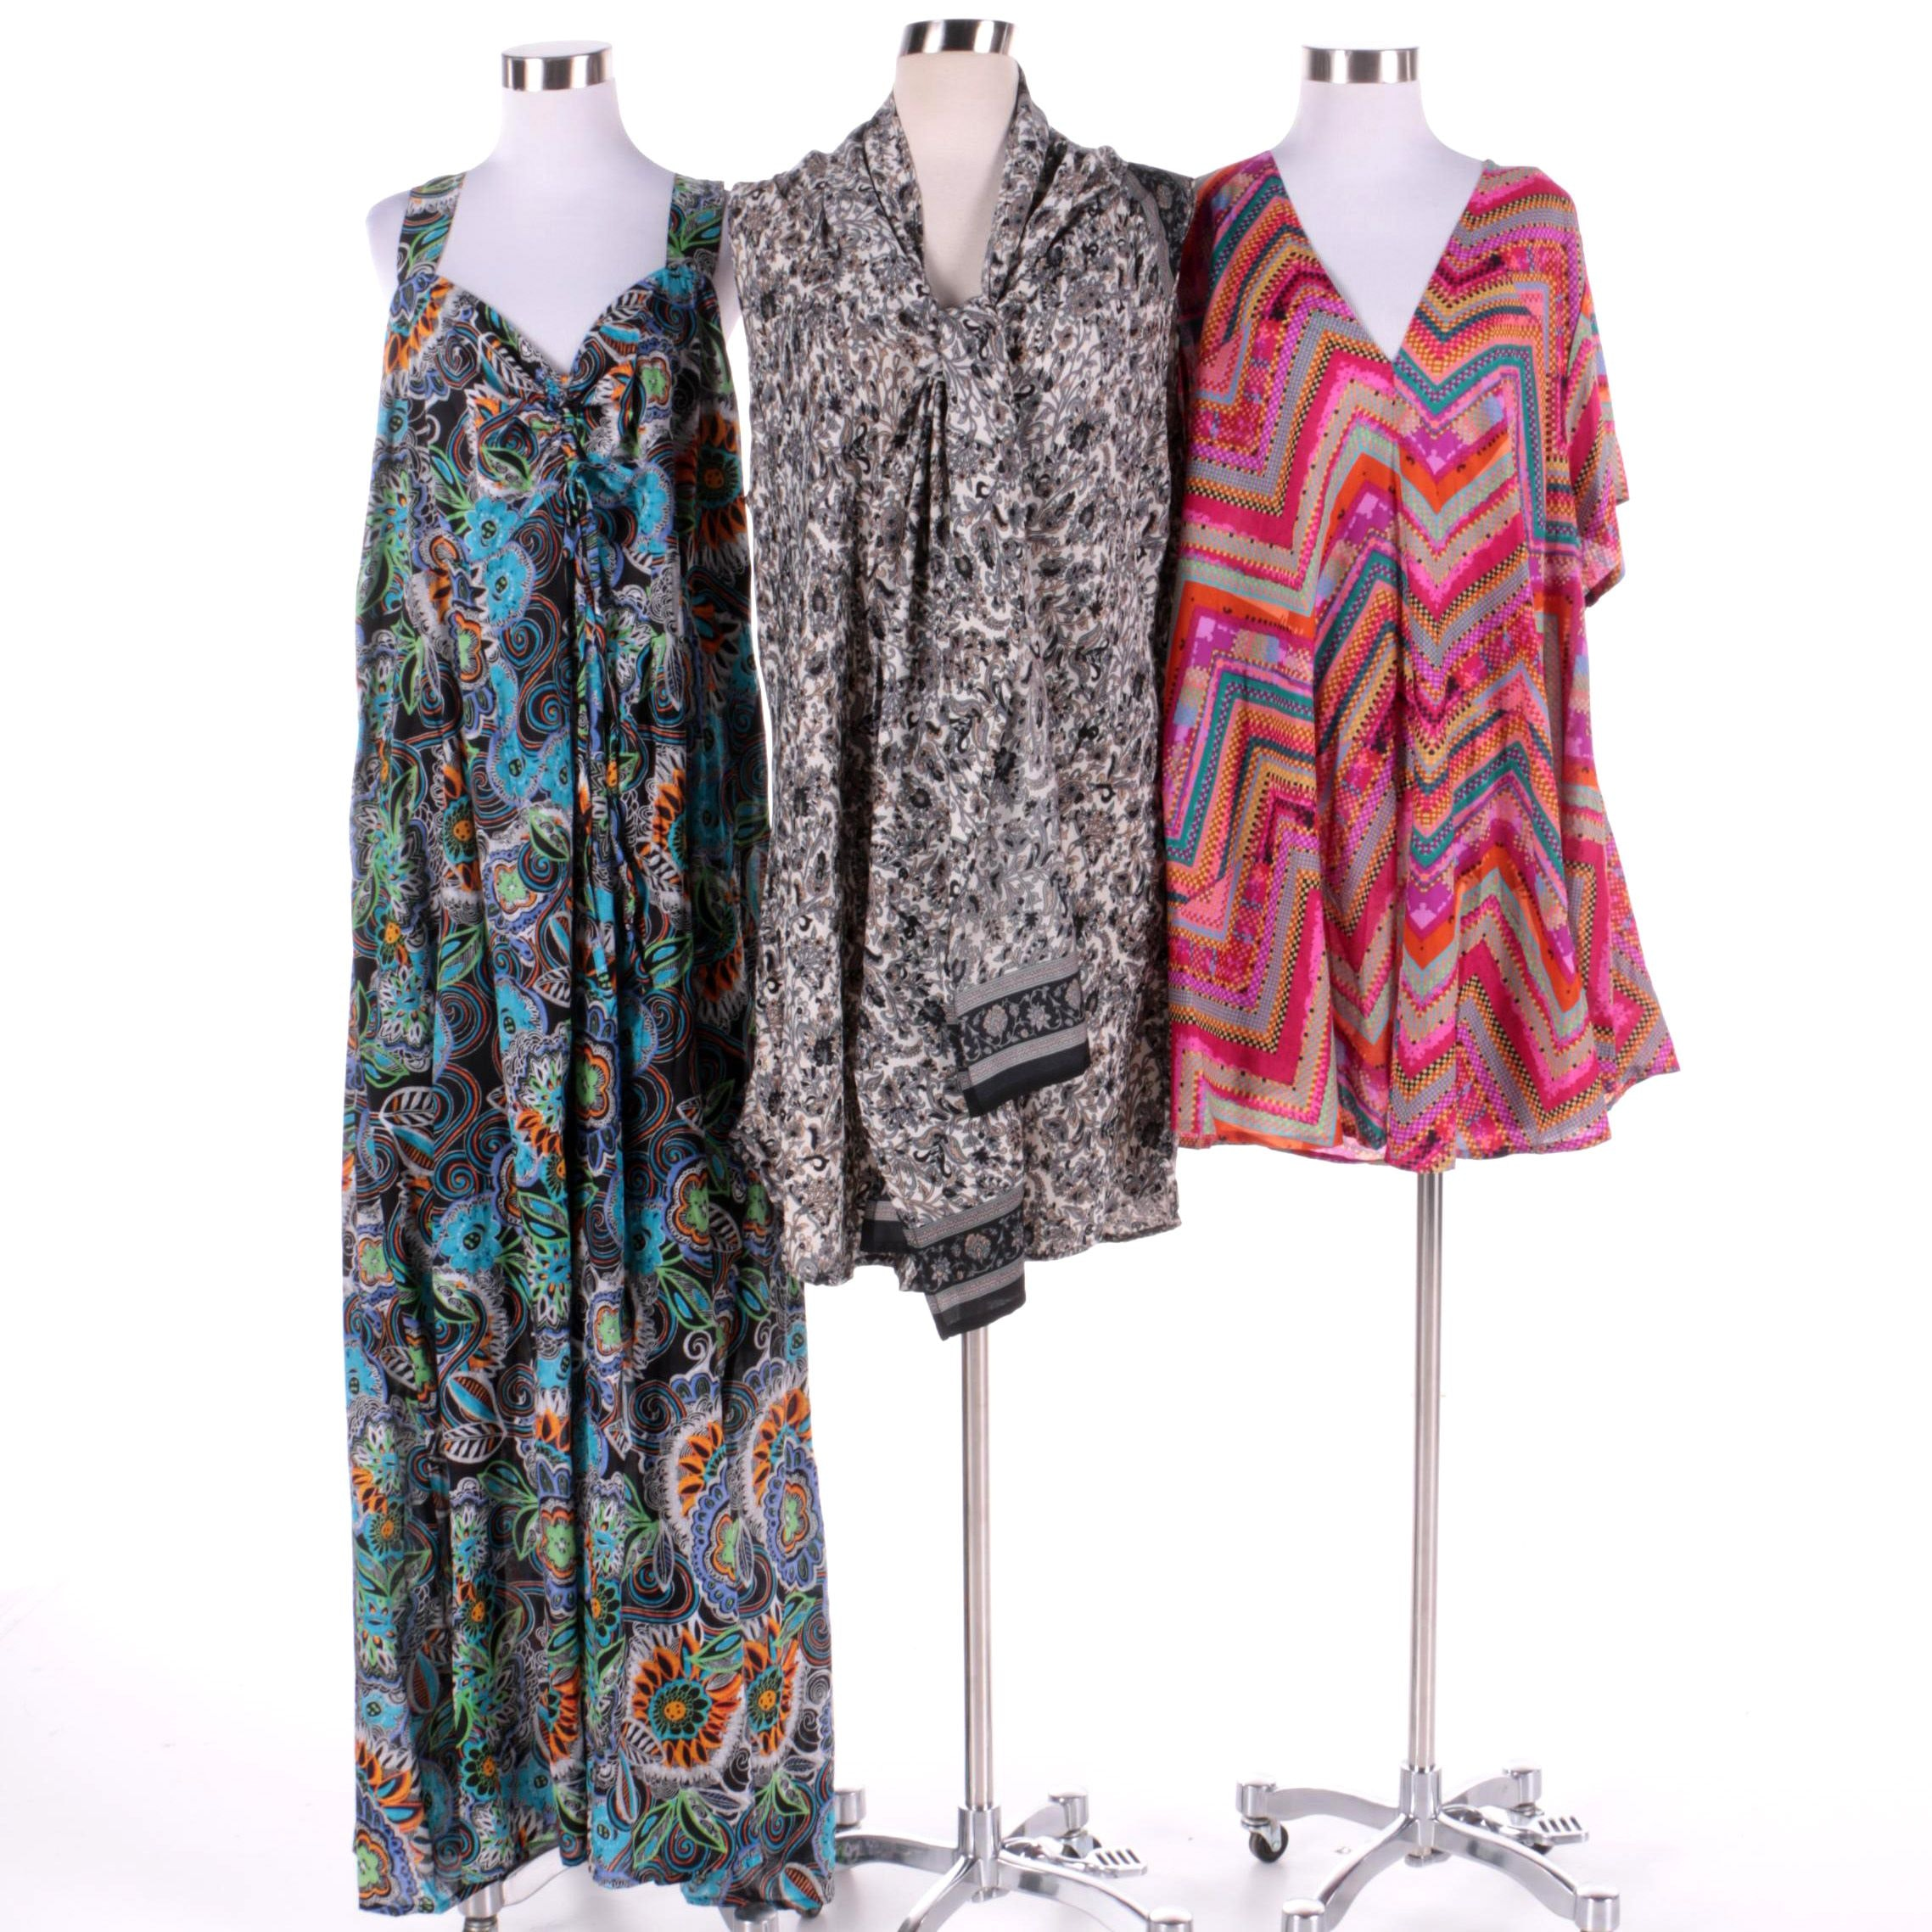 Women's Aller Simplement Casual Summer Maxi and Tunics